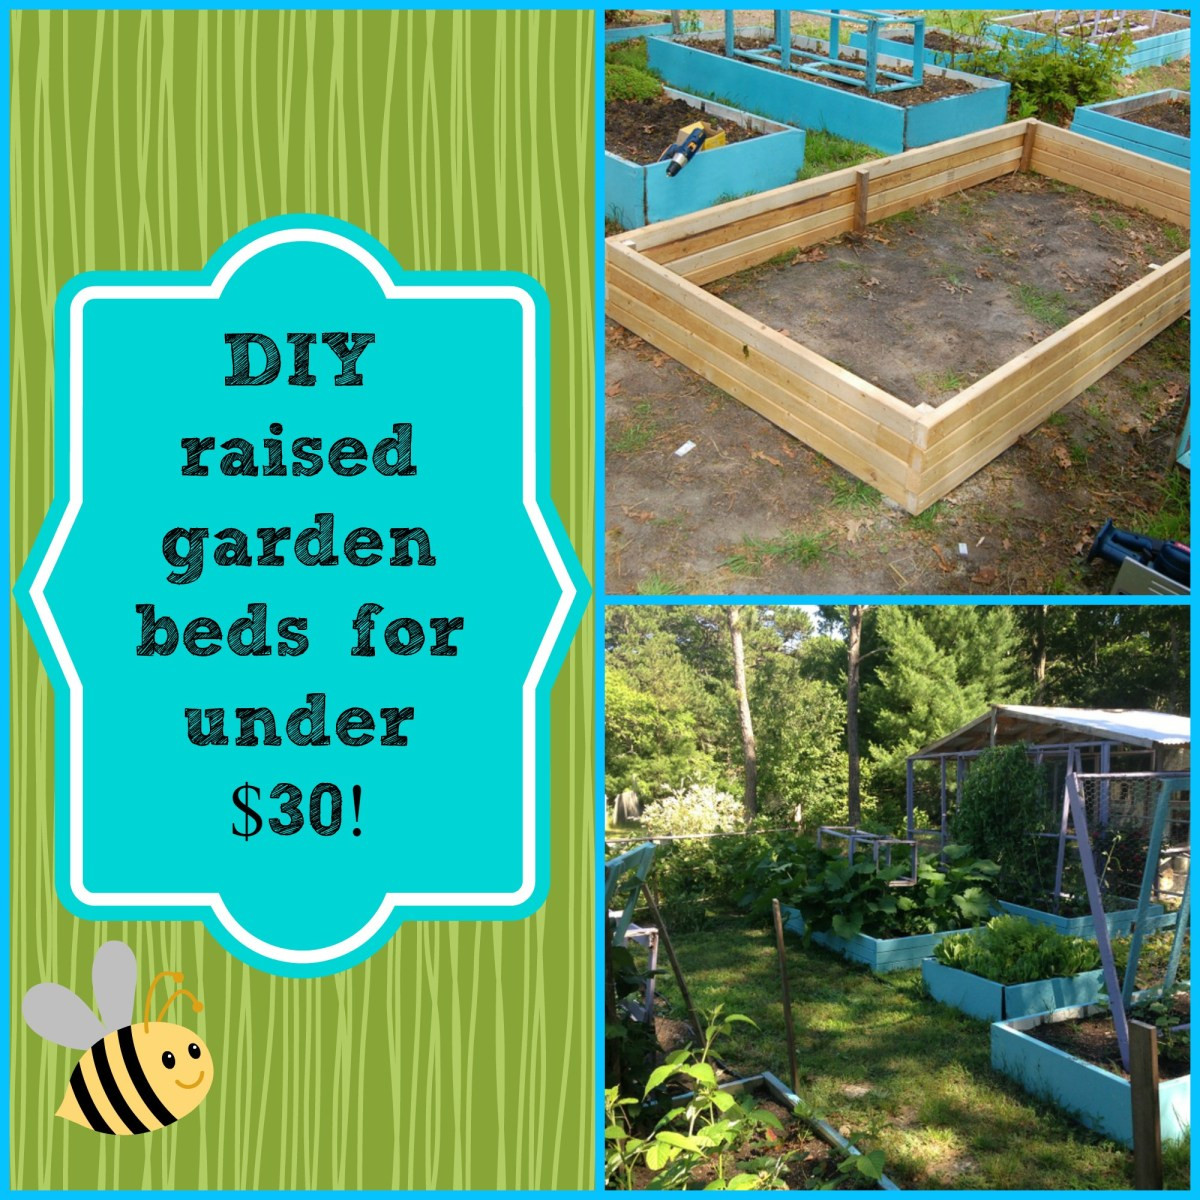 Best ideas about DIY Raised Beds Garden . Save or Pin DIY Super Easy Raised Garden Bed for under $30 Now.